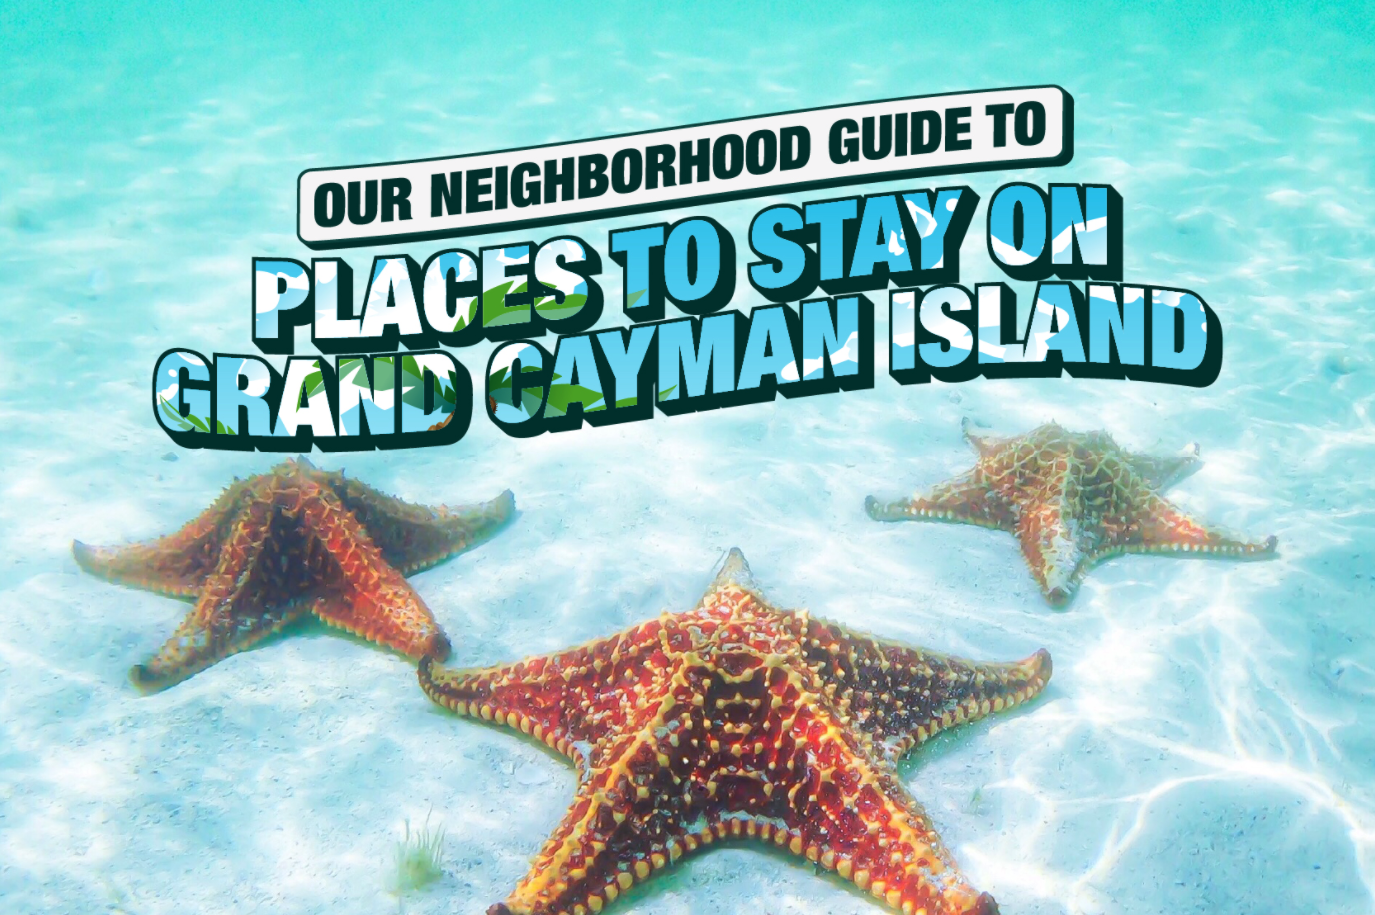 Our neighborhood guide to places to stay on Grand Cayman Island